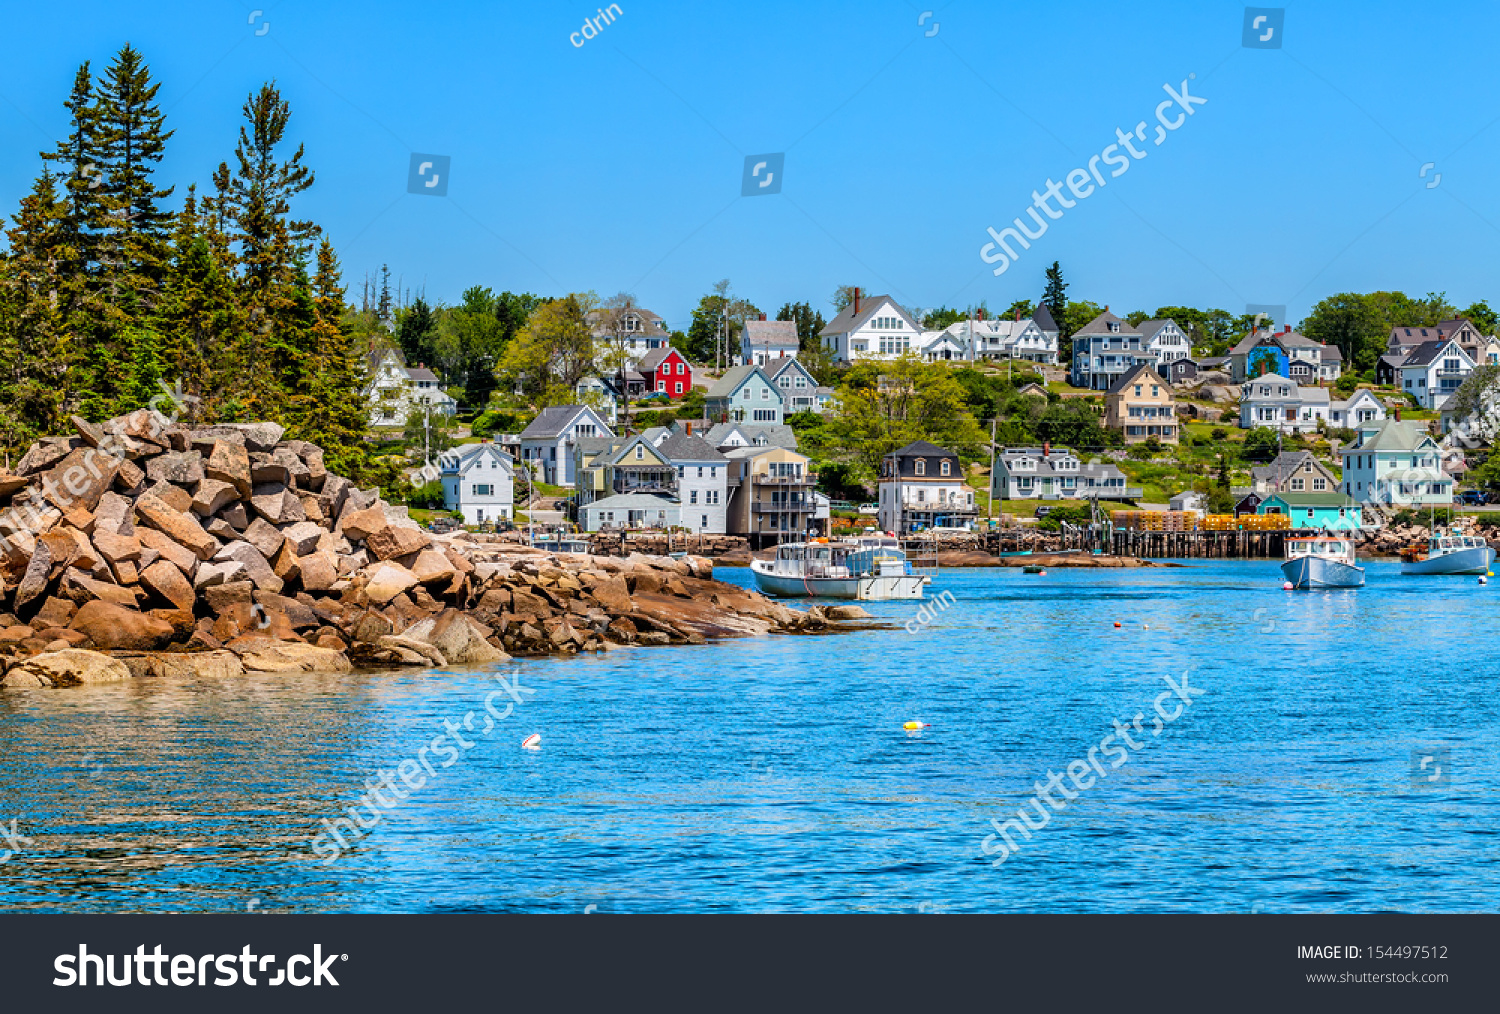 Picturesque New England Fishing Village Waterfront Stock Photo 154497512 - Shutterstock